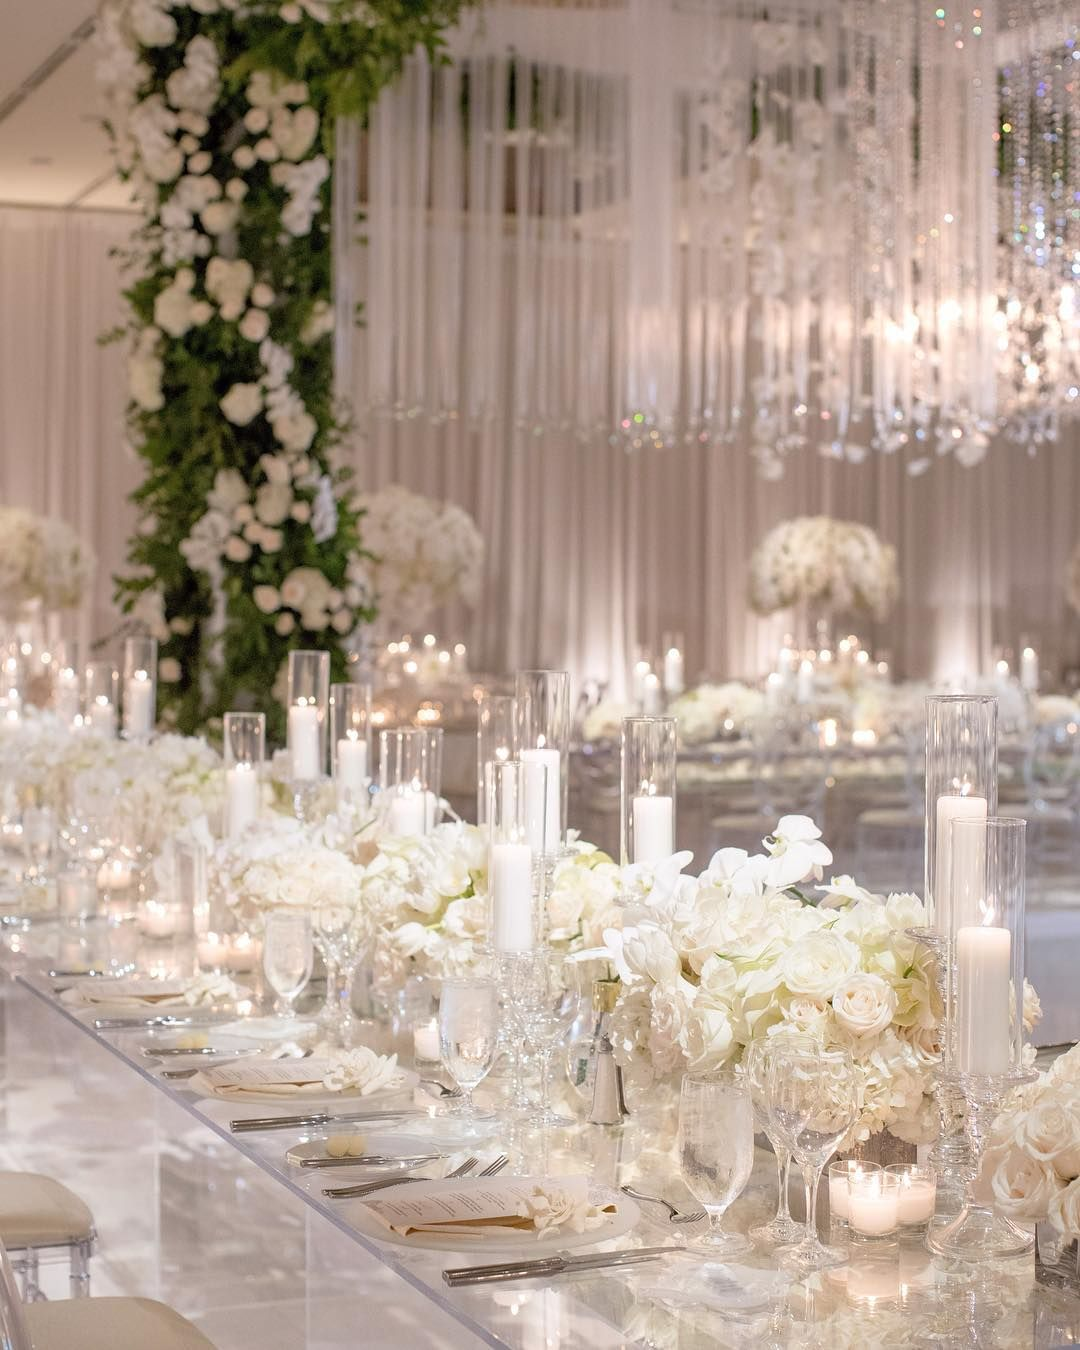 "White Luxury Wedding Decor With Wonderful And Beautiful: Whitelilacinc On Instagram: ""You're So Pretty The Way You"